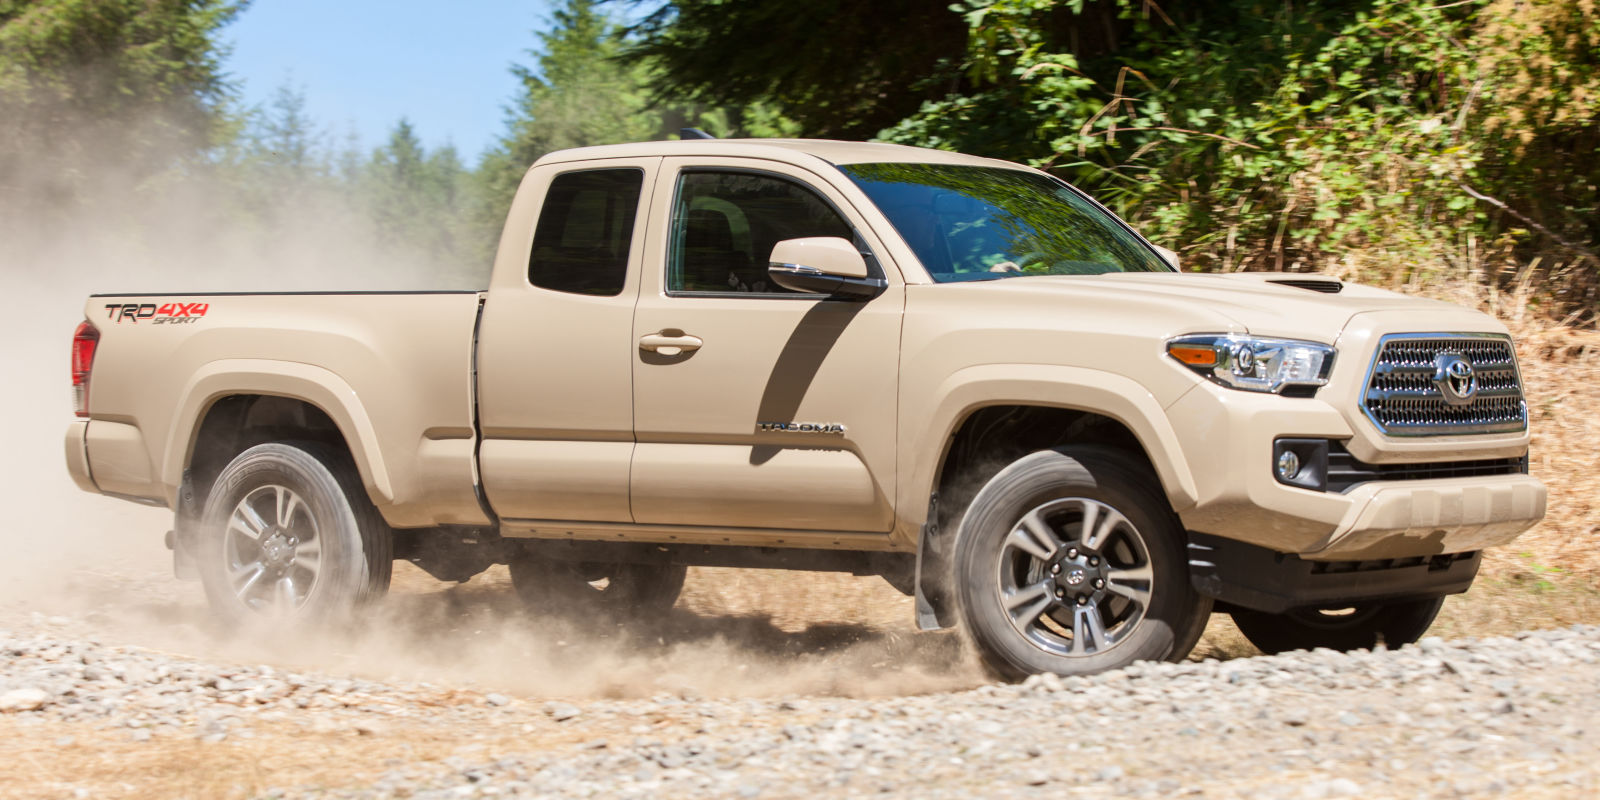 First Drive: 2016 Toyota Tacoma V6 4WD